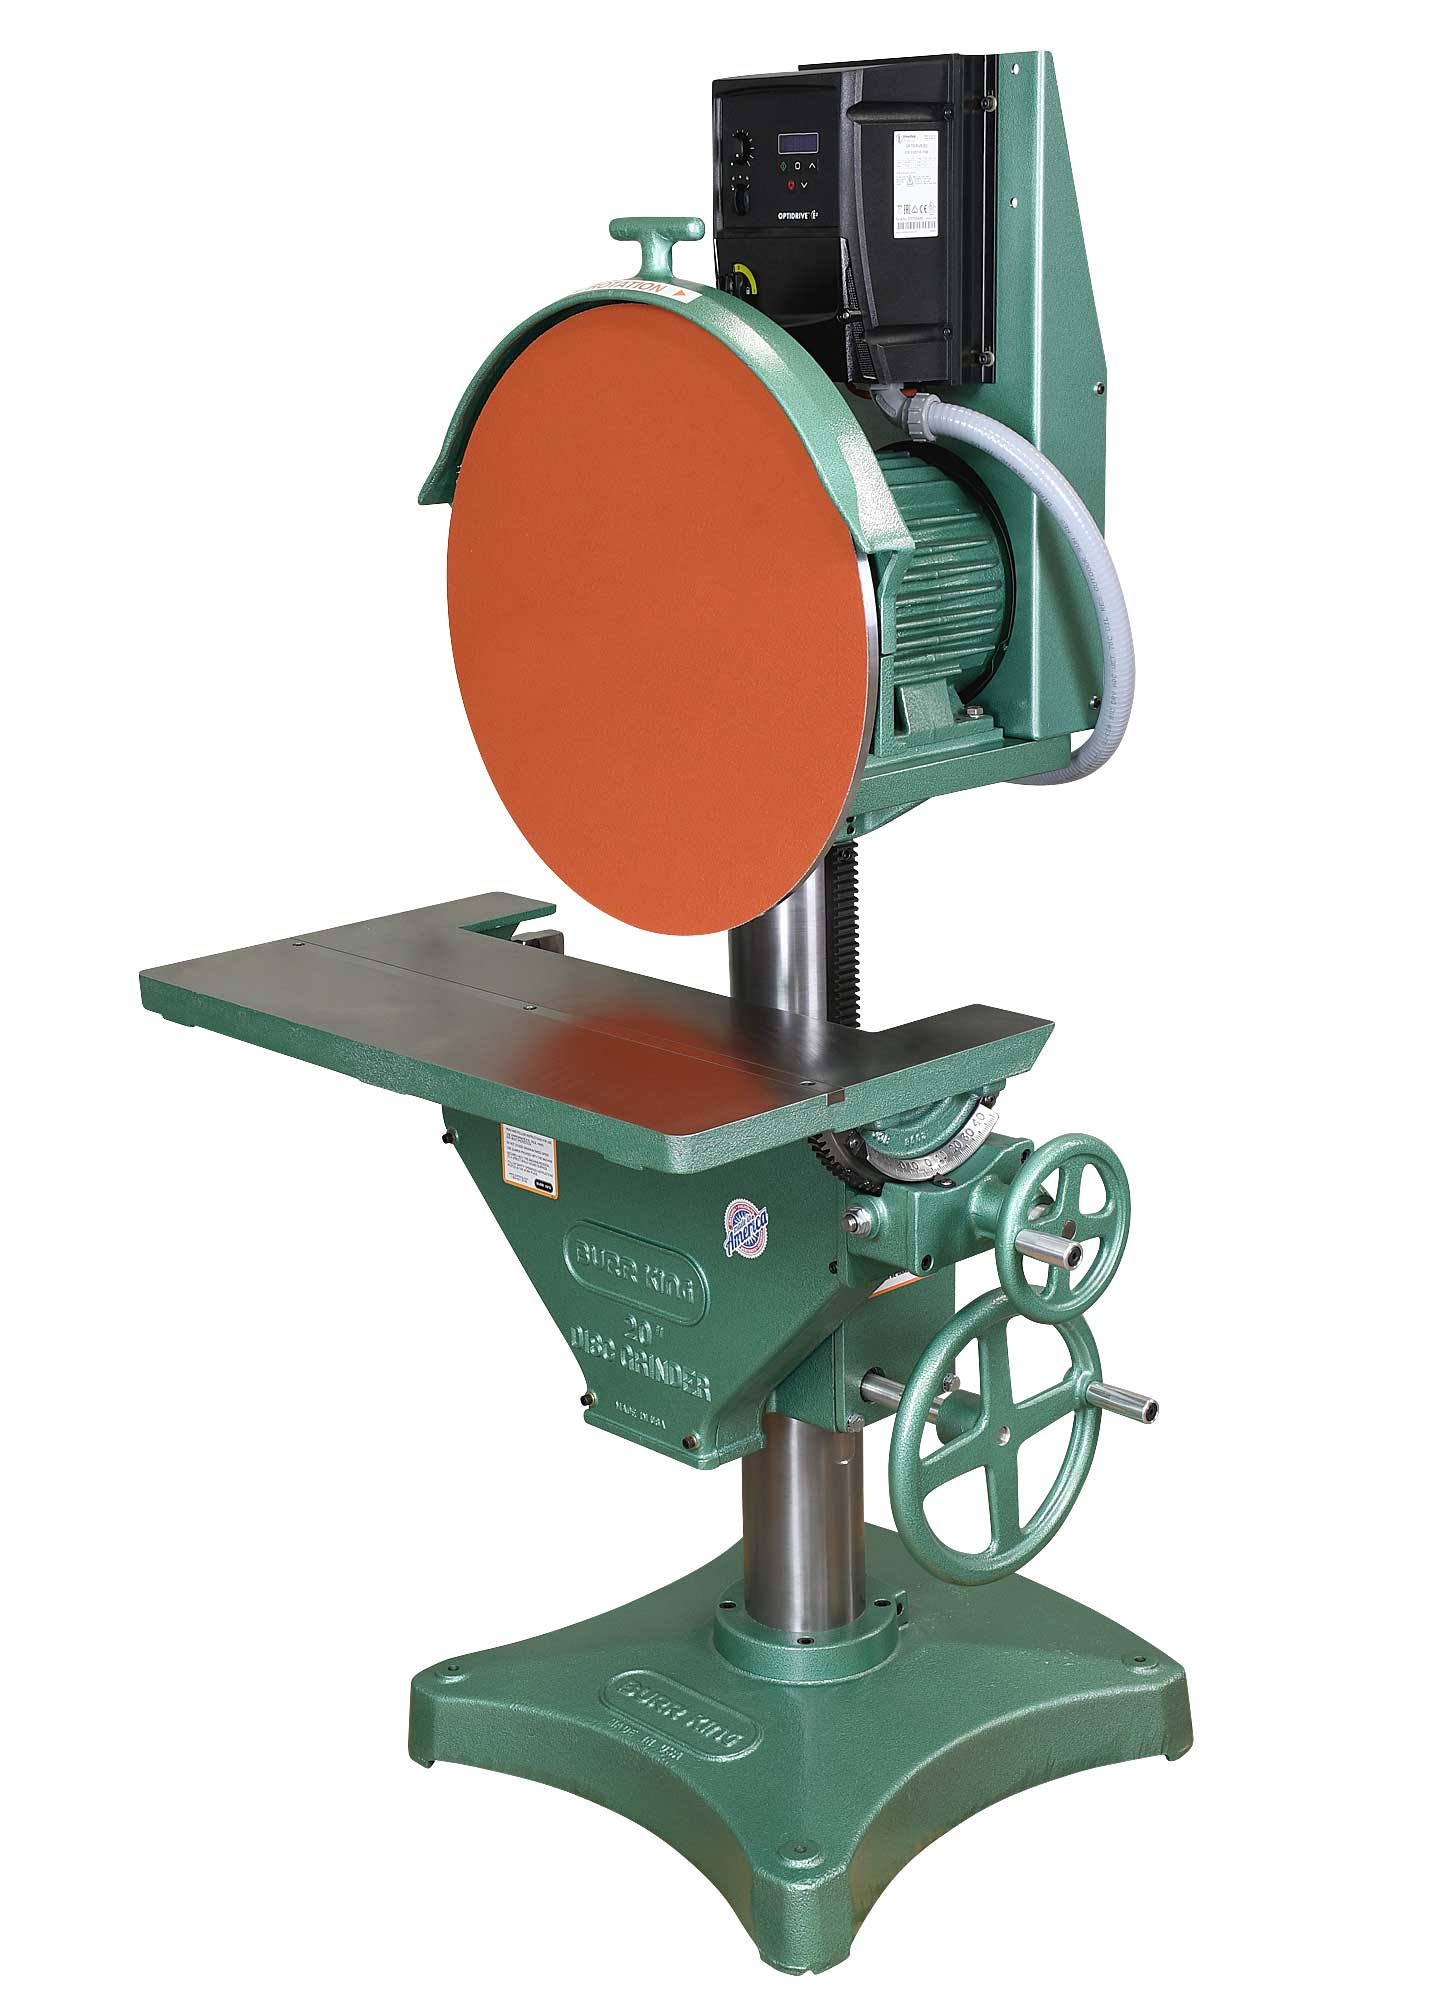 24103 - 20` Variable Speed Disc Grinder,  gear driven table